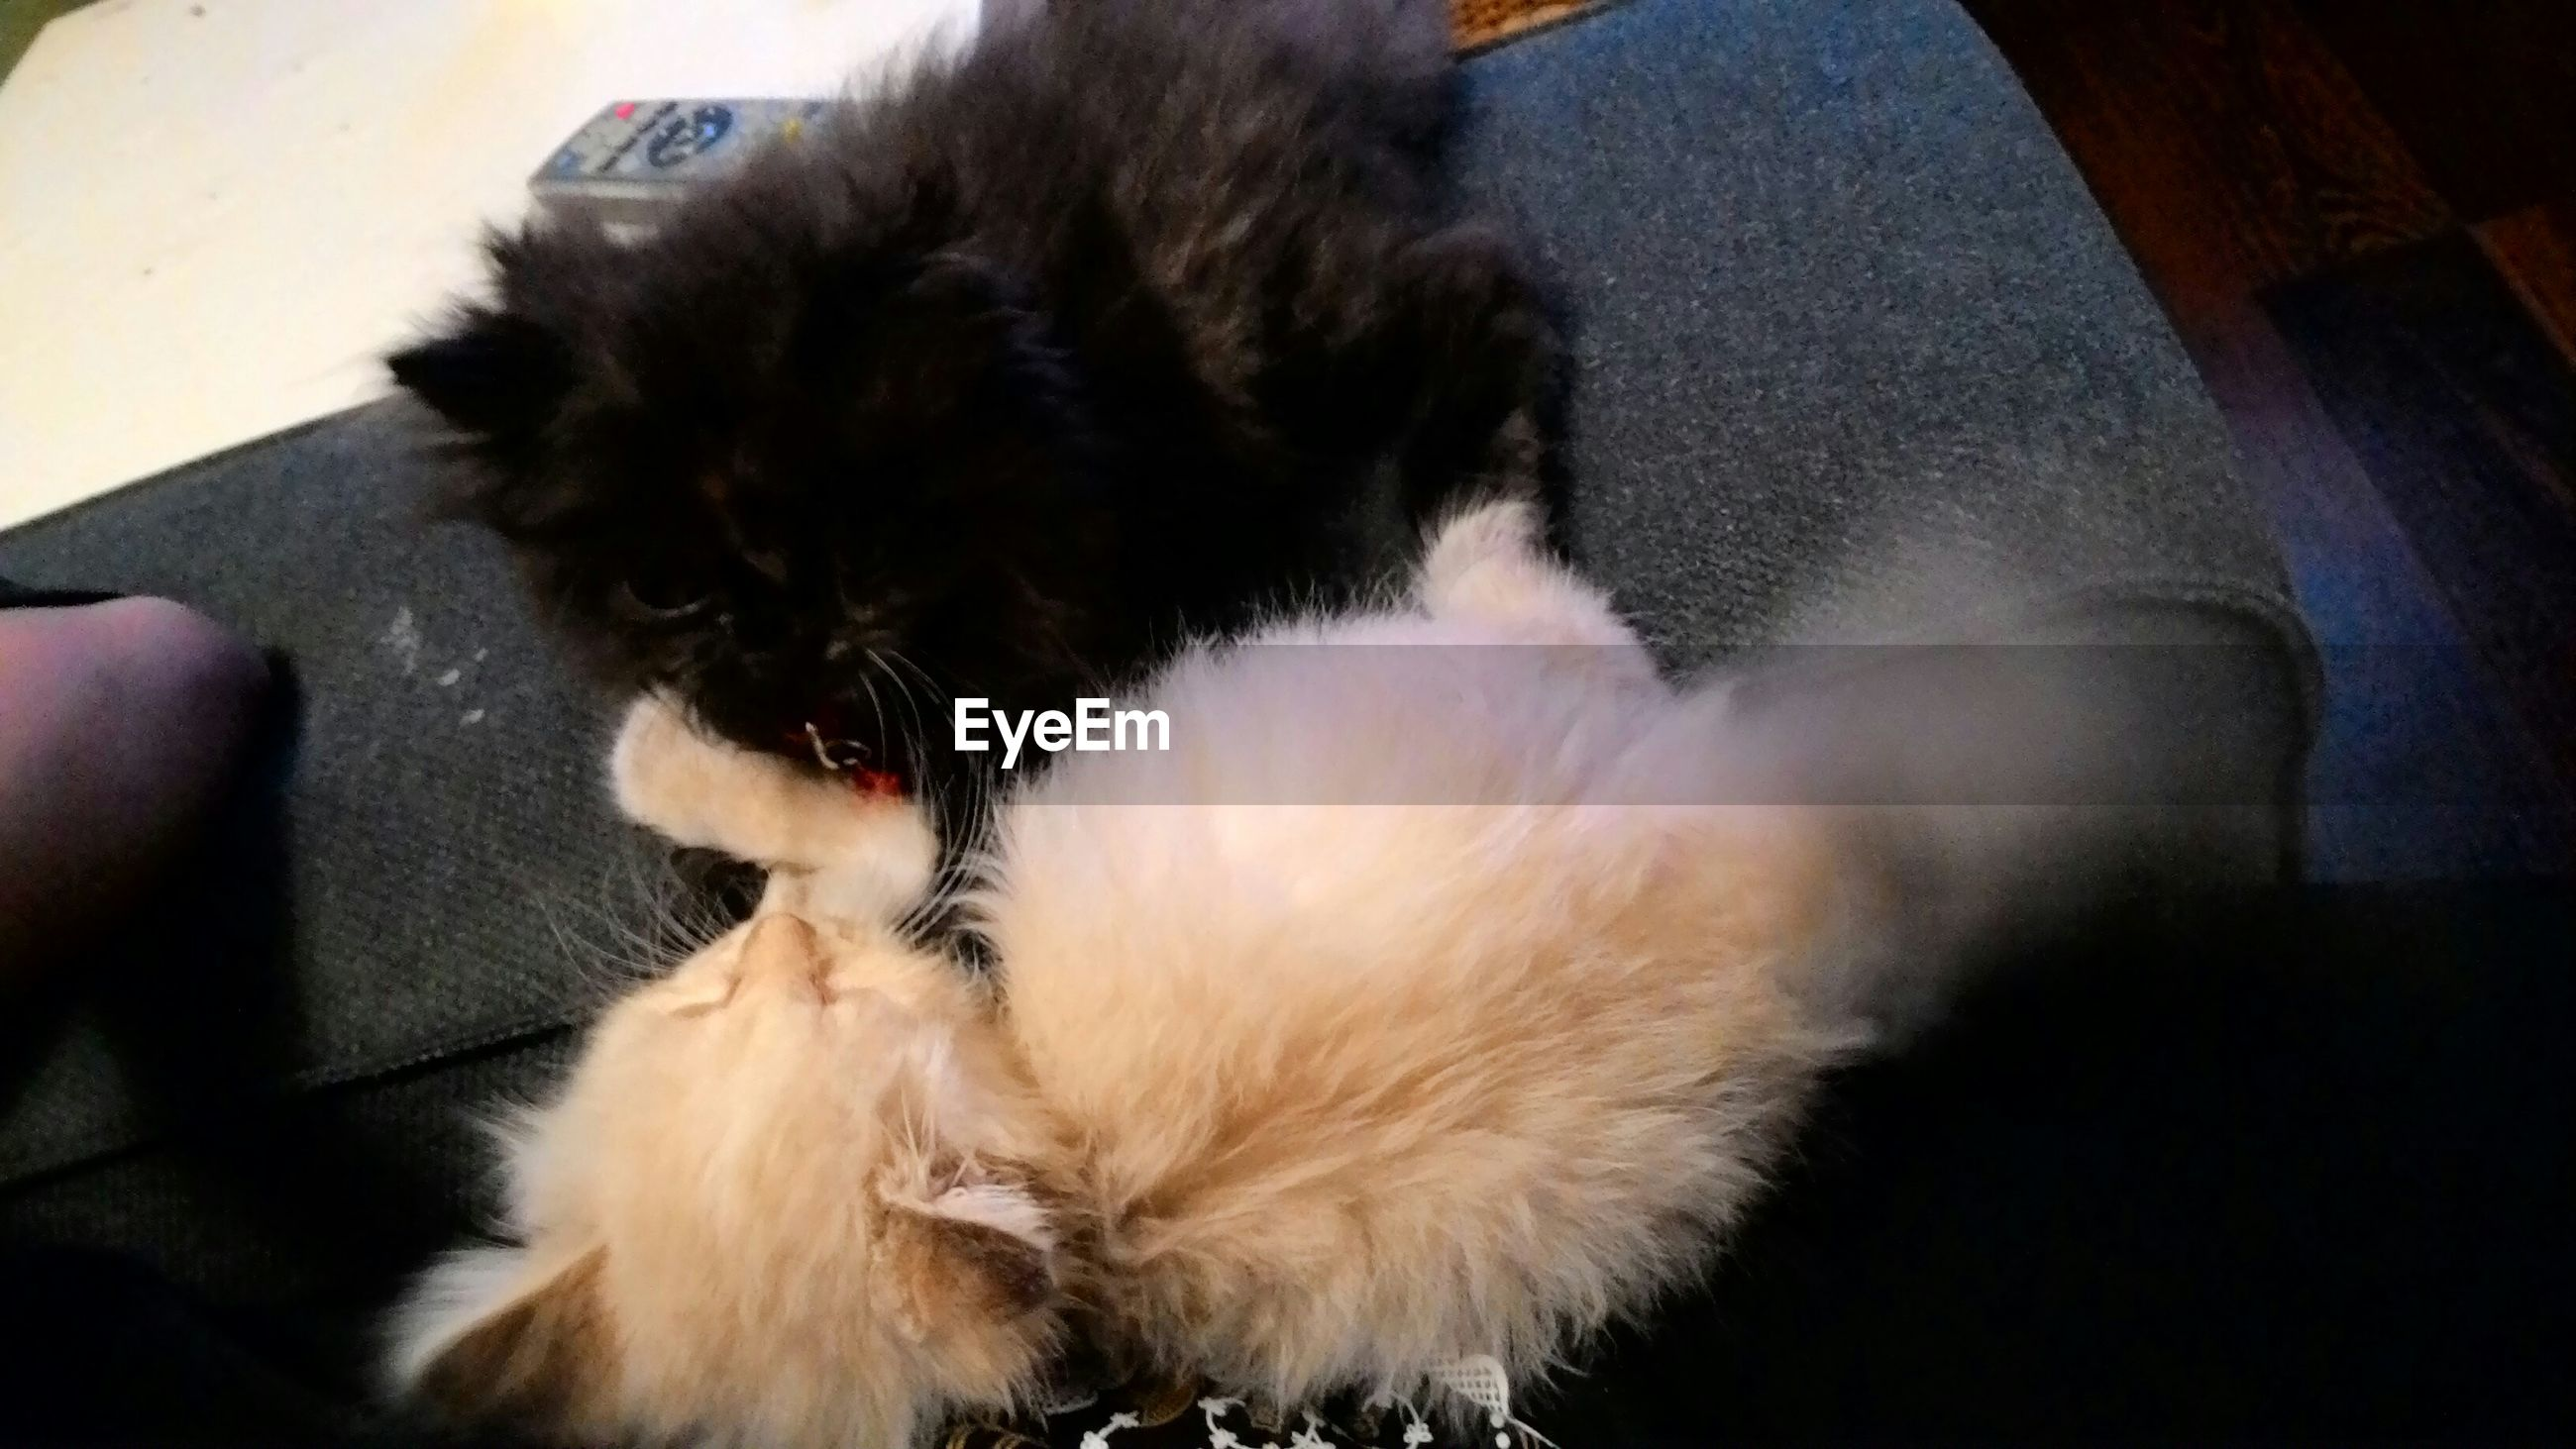 domestic animals, pets, animal themes, one animal, mammal, domestic cat, indoors, cat, dog, feline, relaxation, high angle view, whisker, sleeping, part of, close-up, resting, lying down, pet owner, home interior